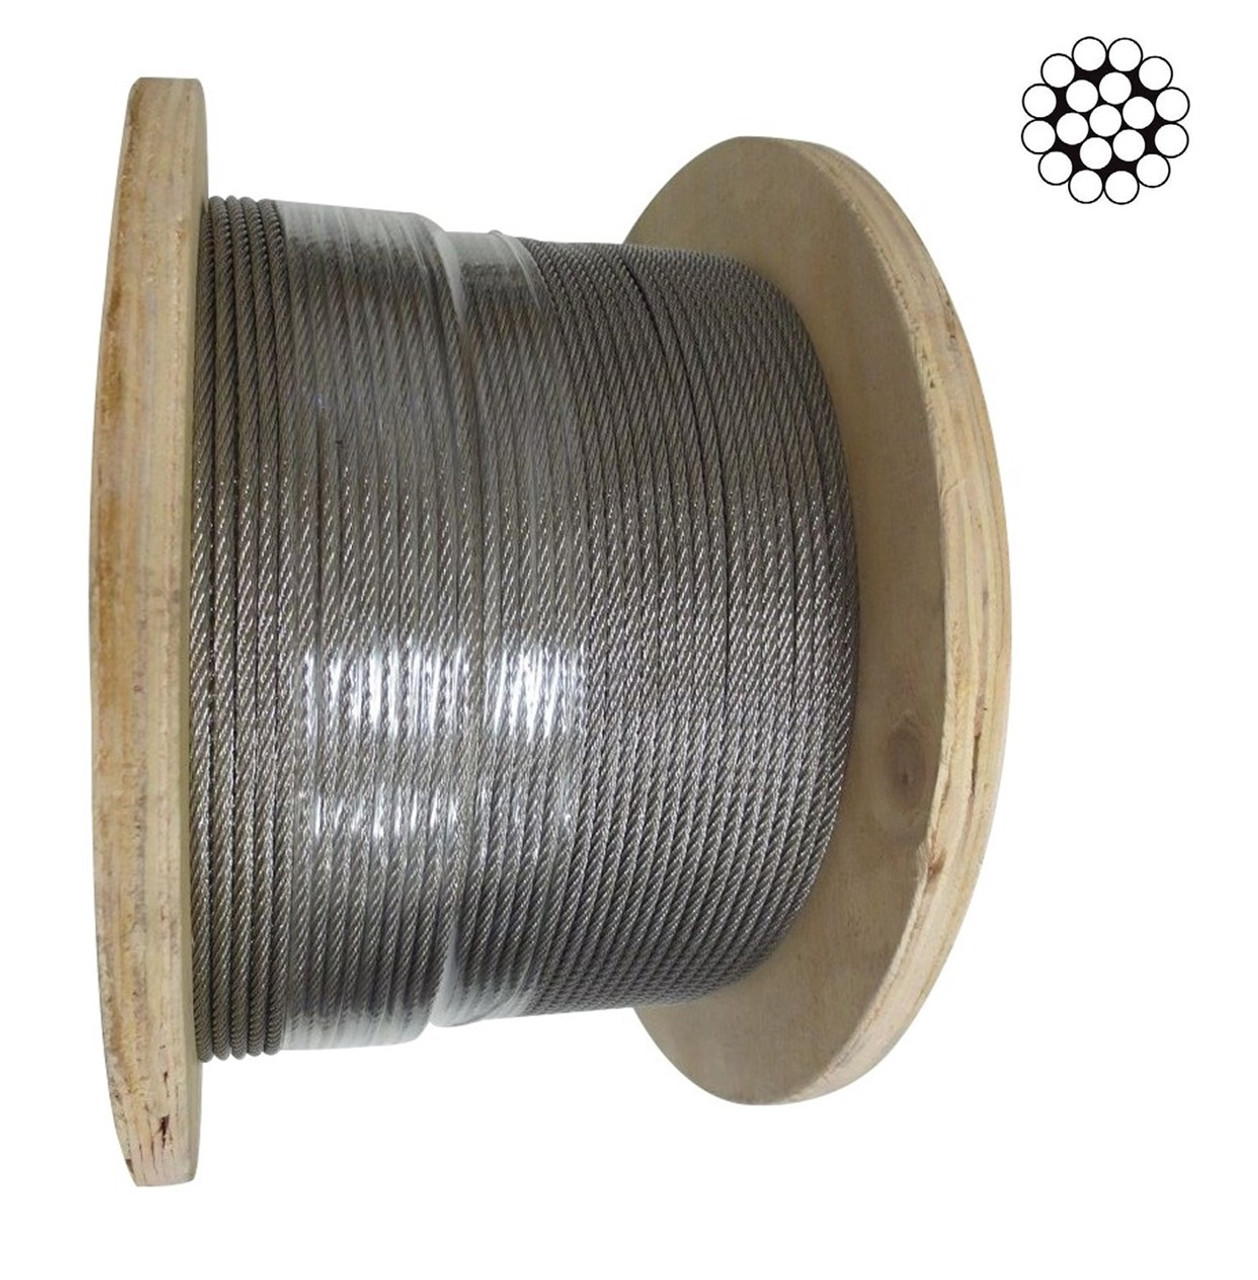 3.2mm Stainless Steel Wire Rope 1 x 19 - 200m roll